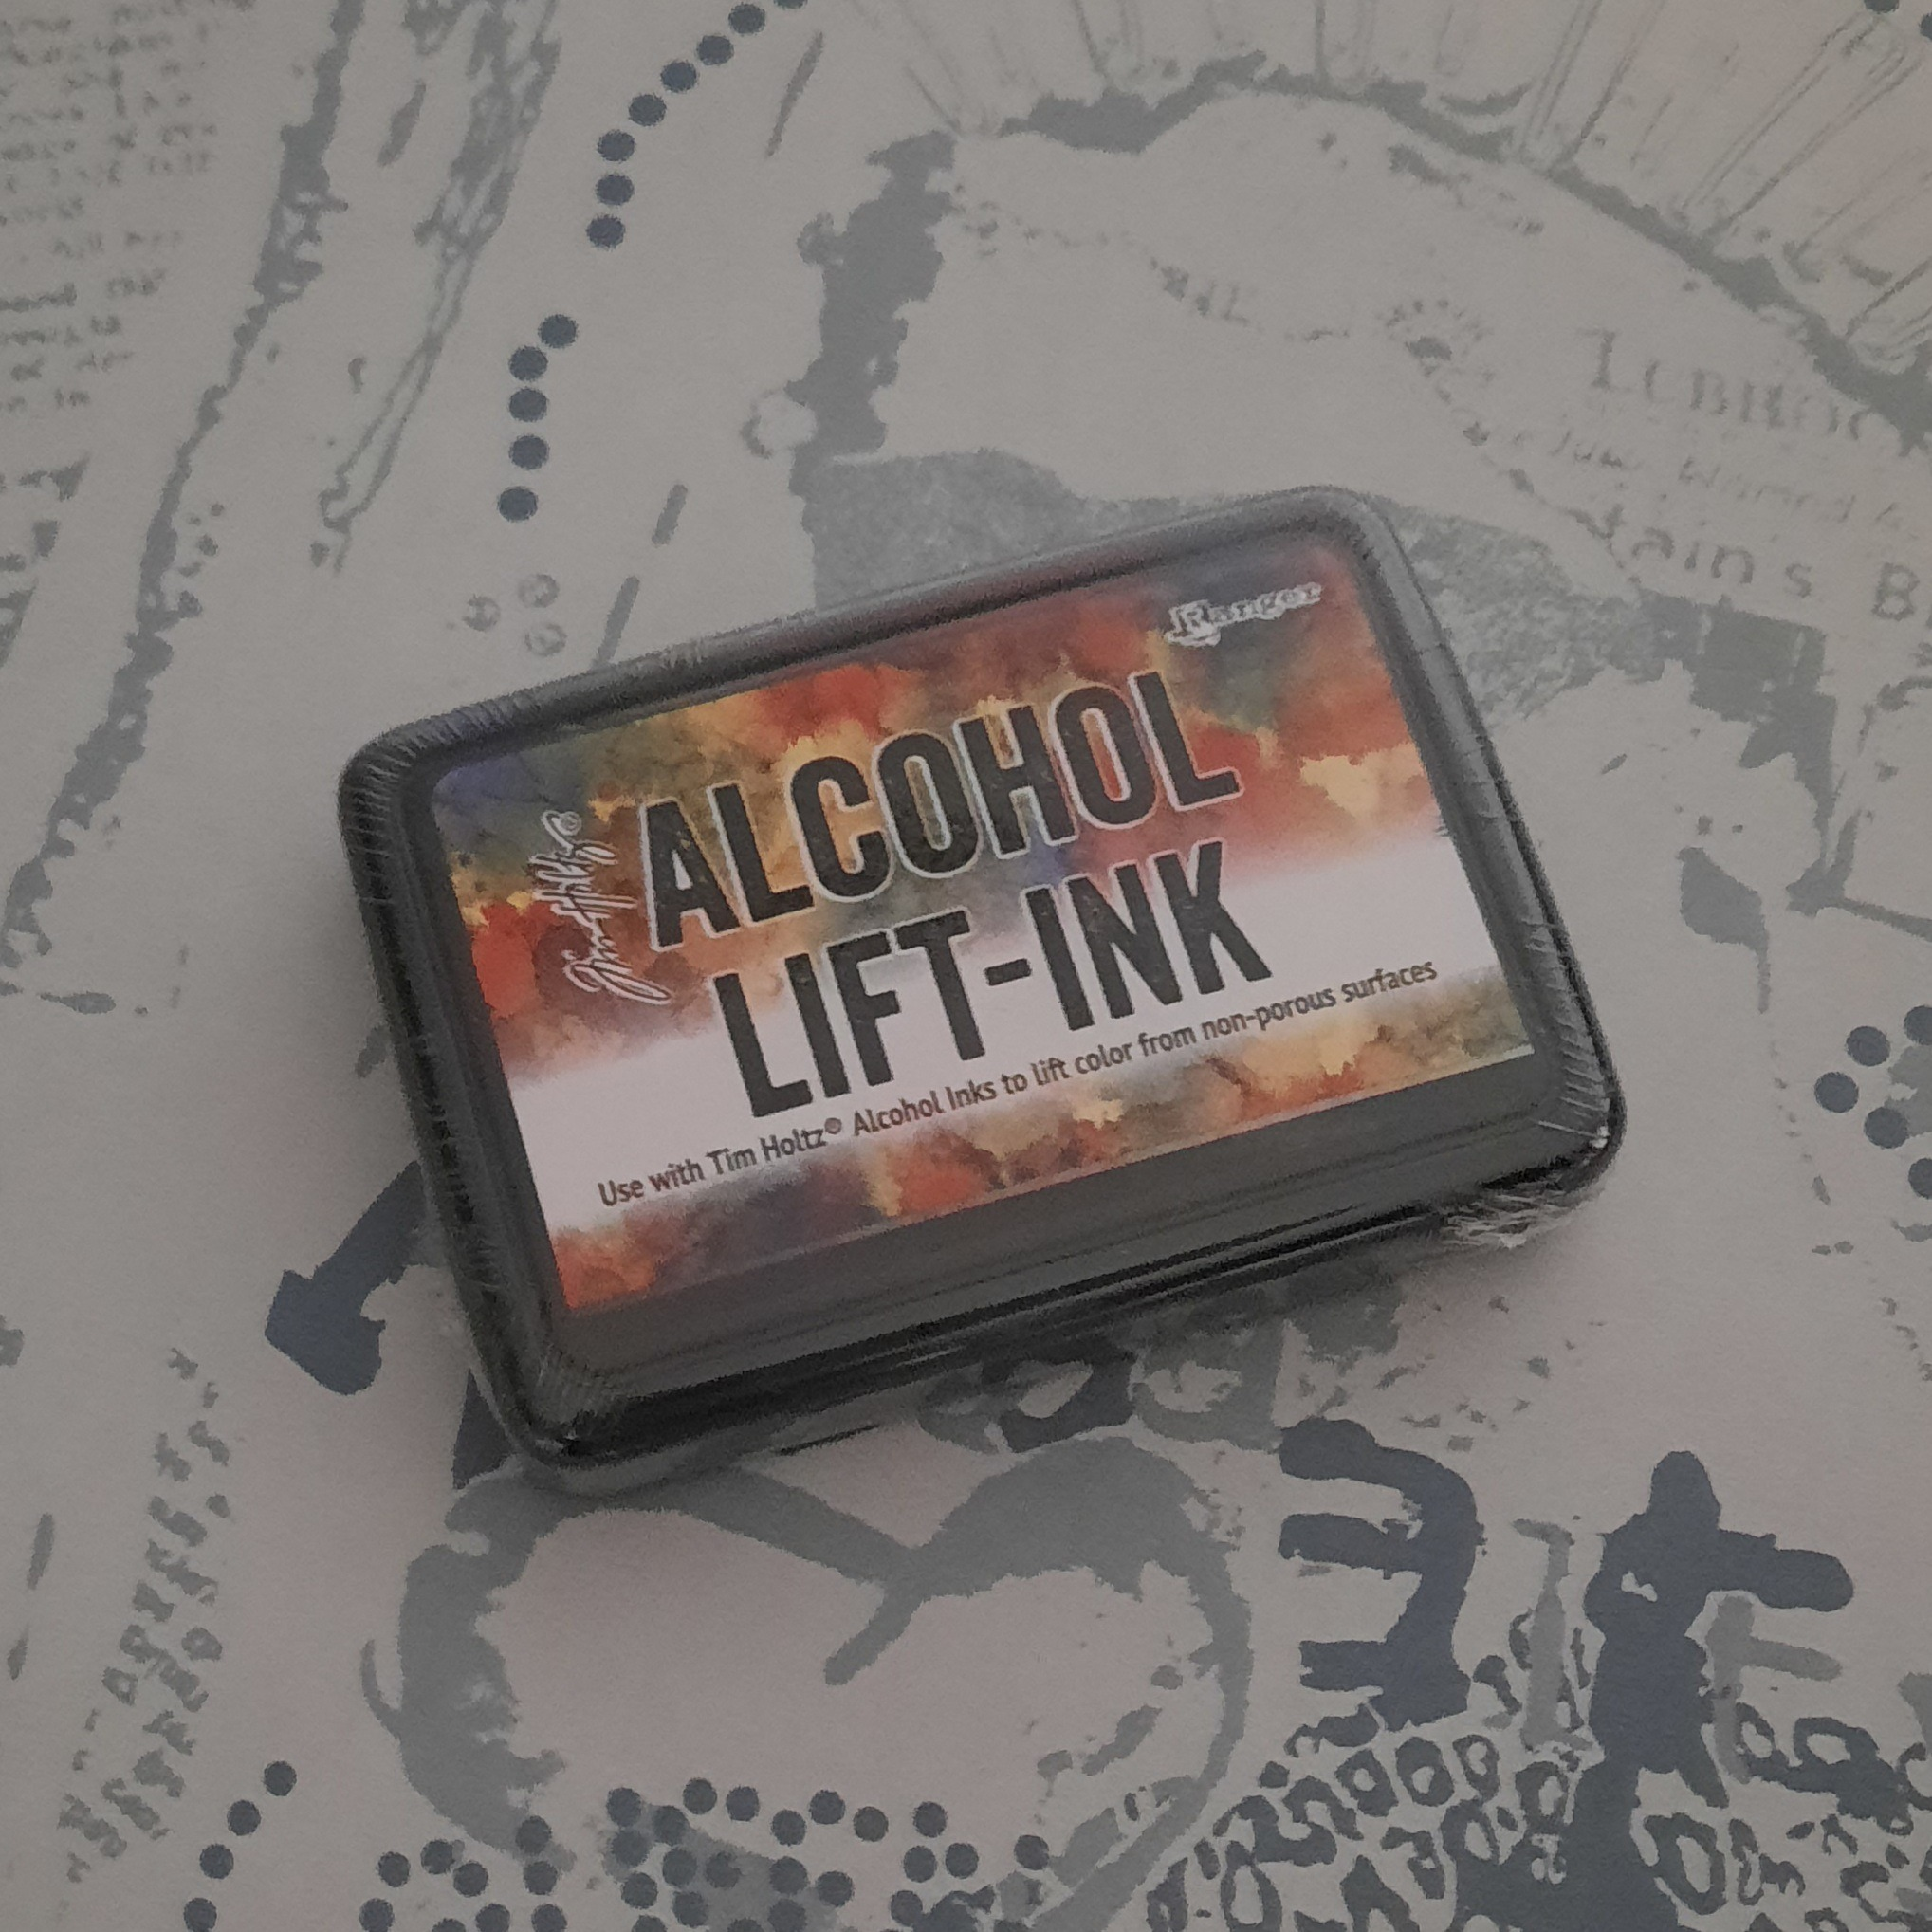 Alcohol lift ink